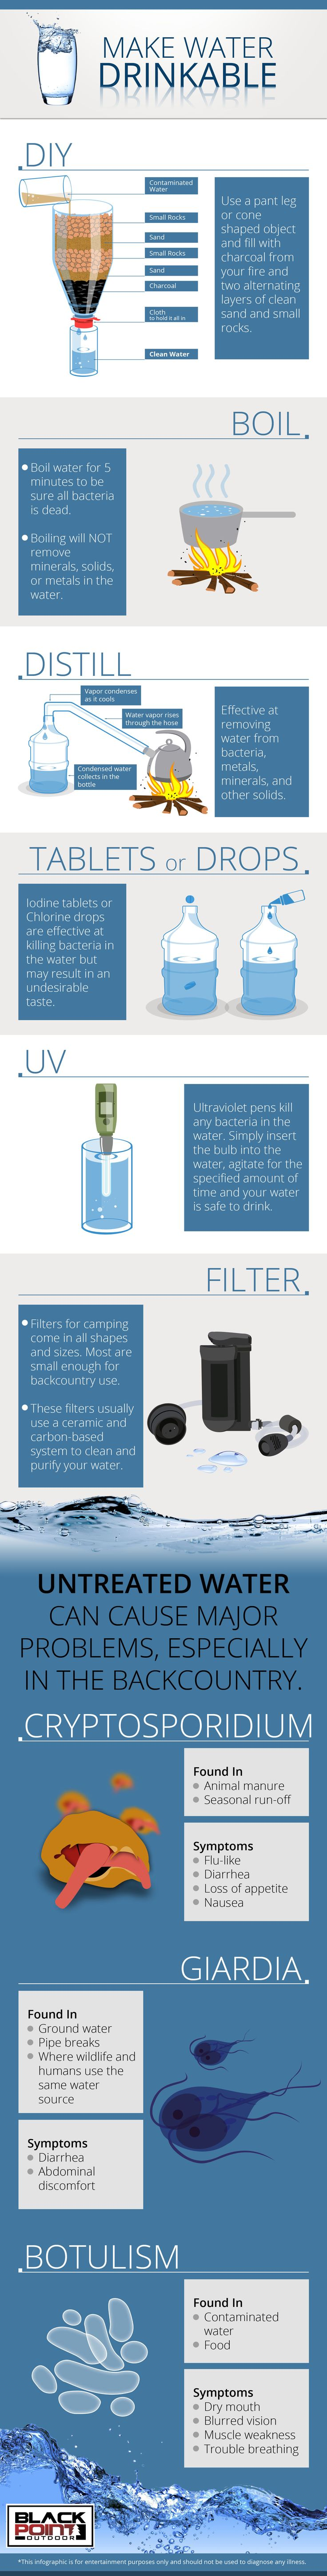 Make your water safe to drink, even while camping with this infographic. DIY water filter. Purifying water. Drinking water.